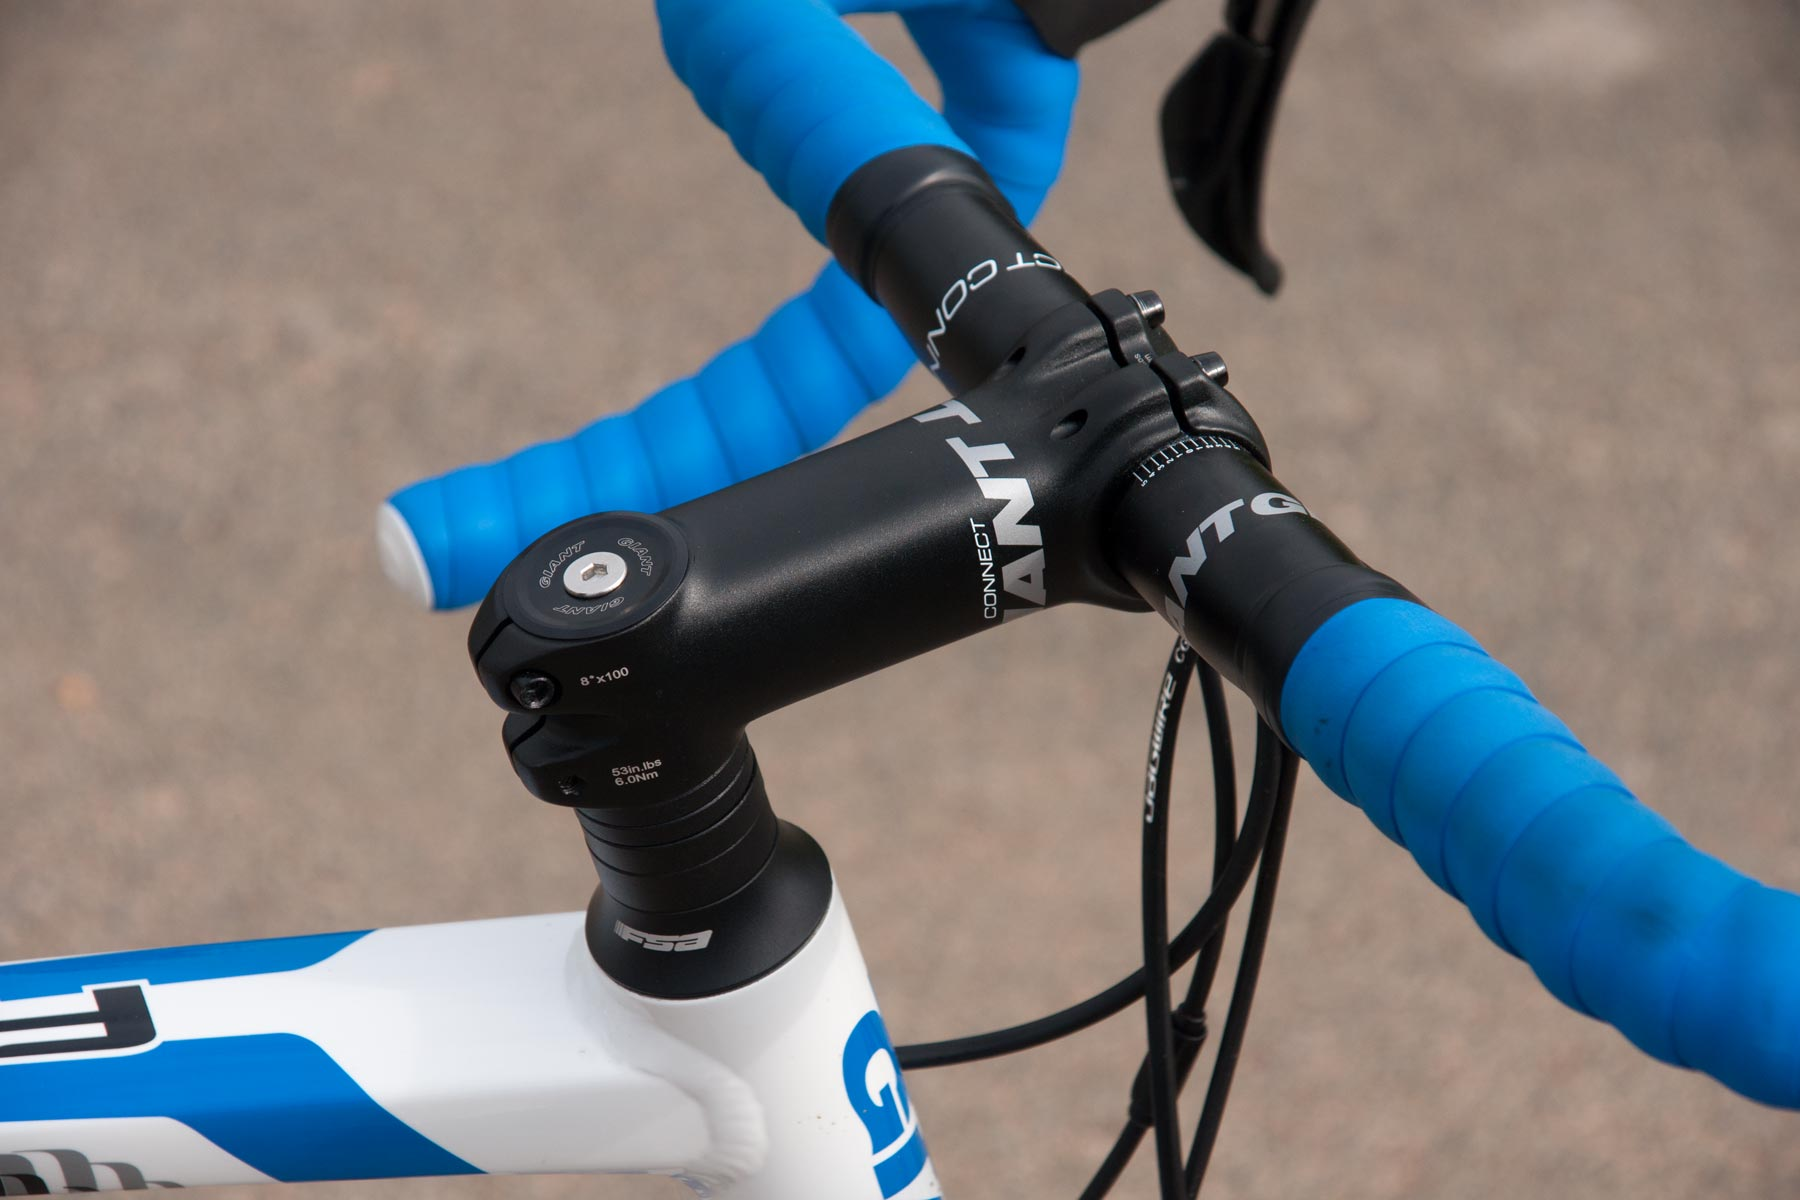 Giant Defy 0 2014 review - The Bike List